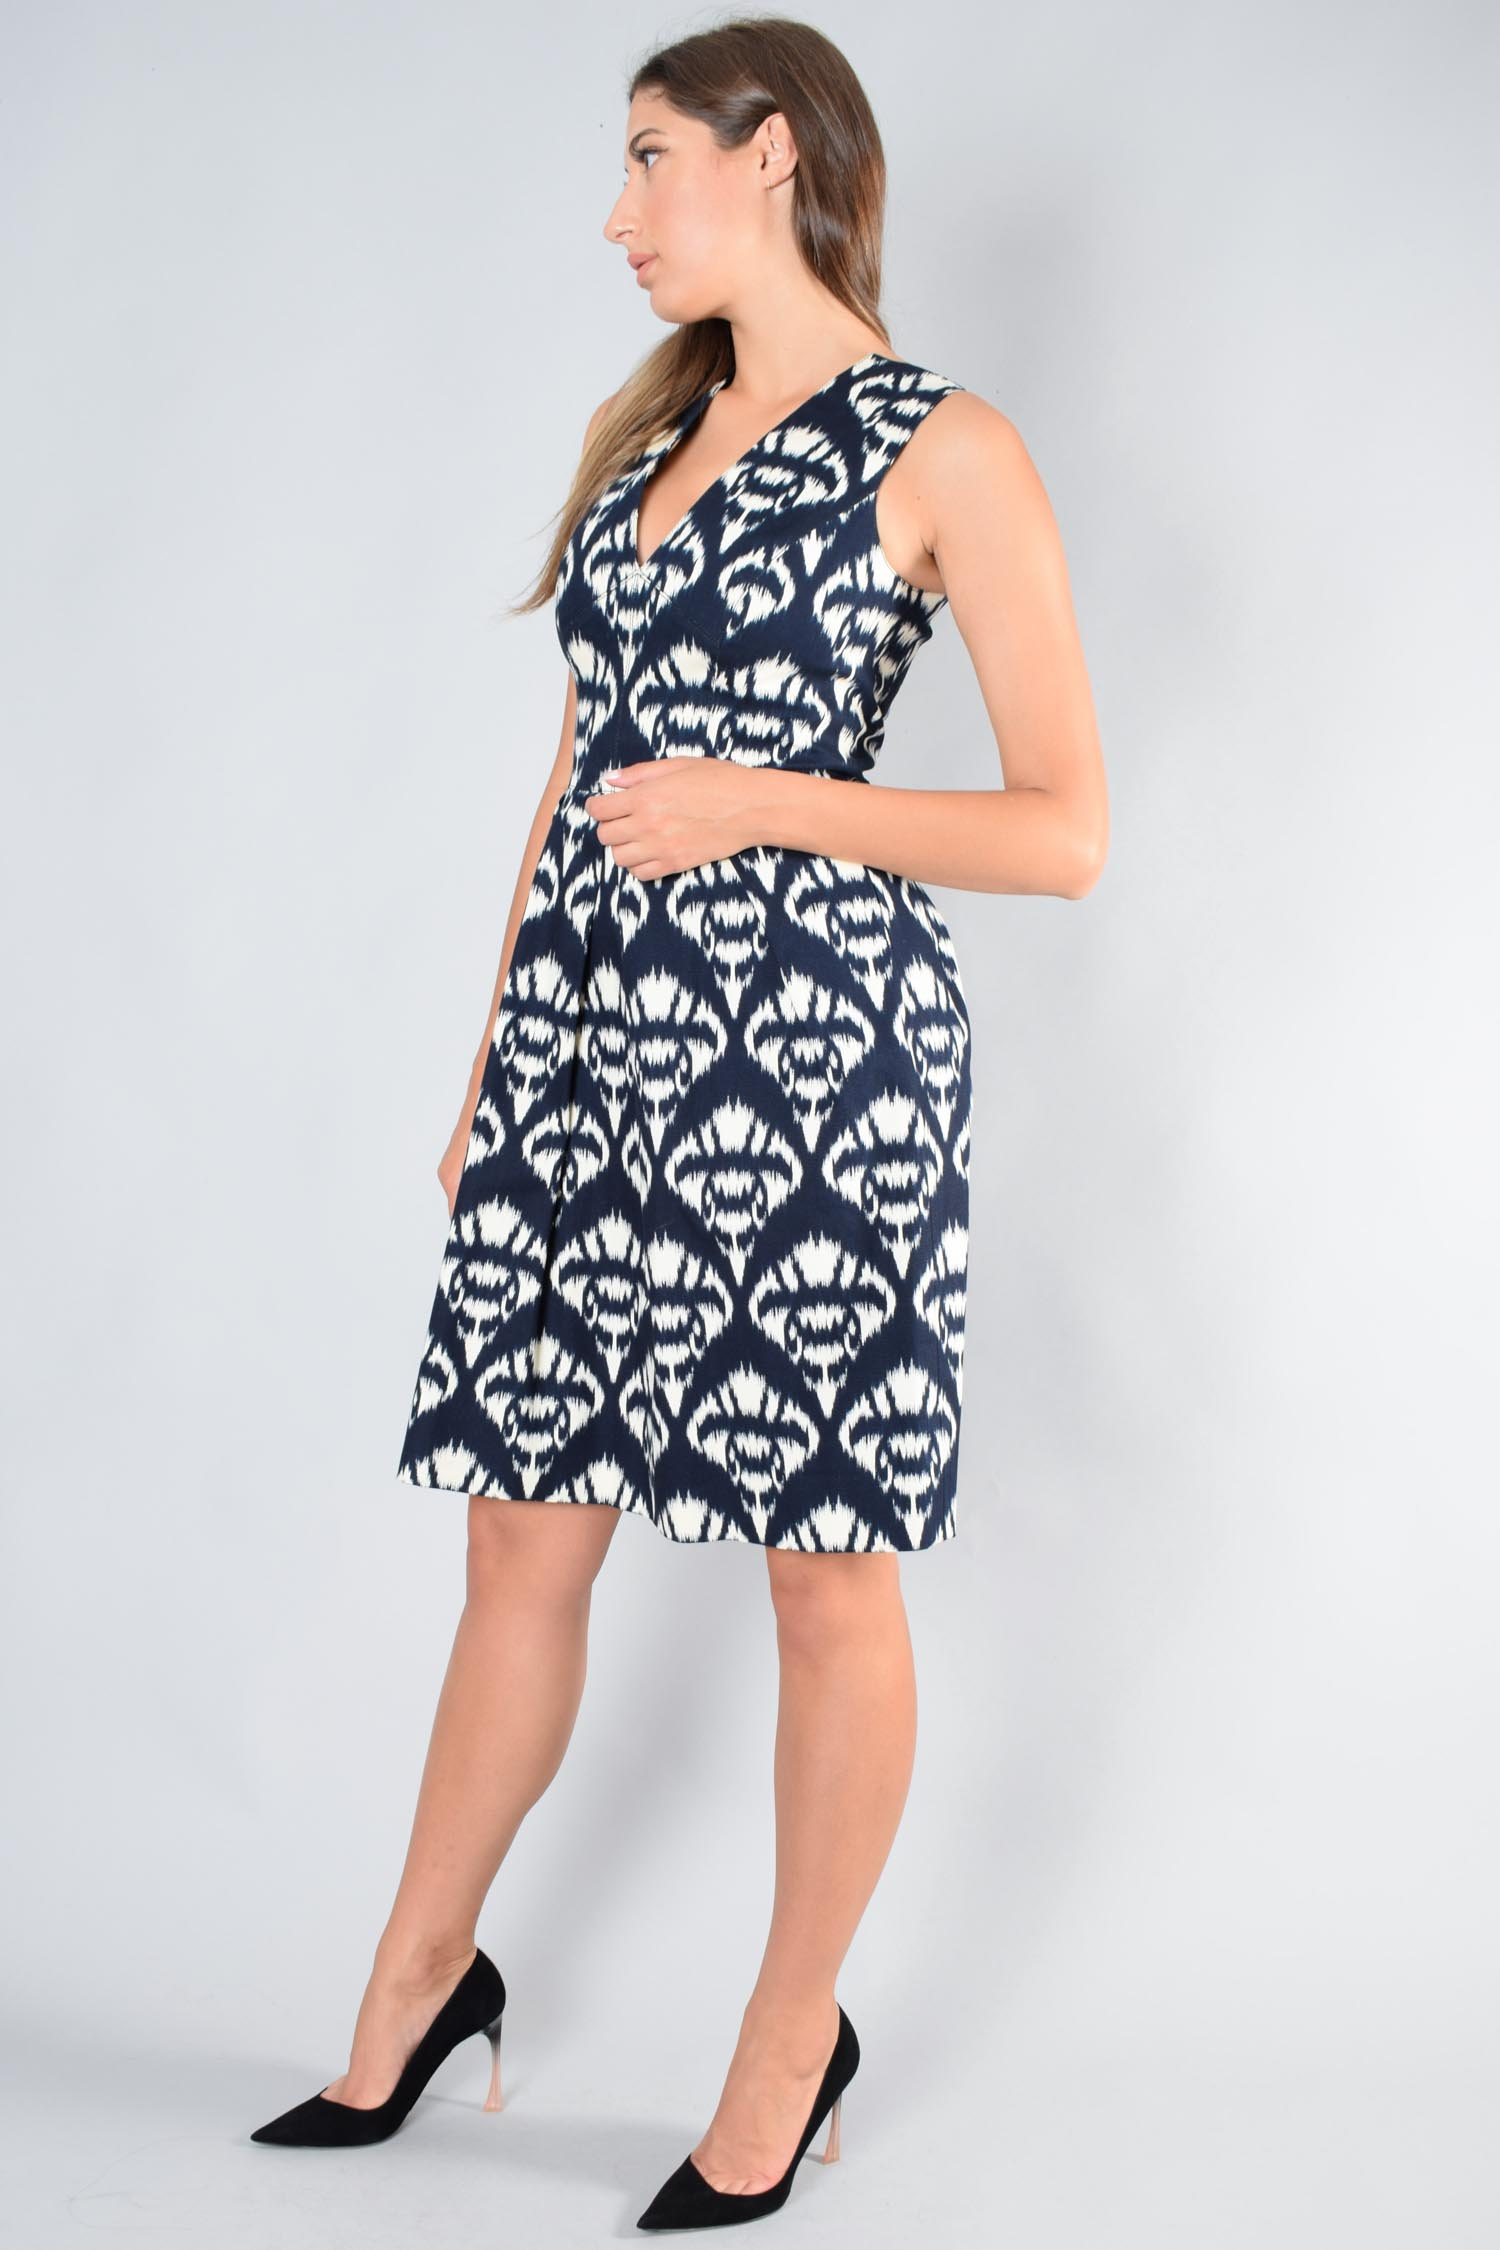 Oscar De La Renta Blue/Cream Sleeveless Boatneck Printed Midi Dress Size 8